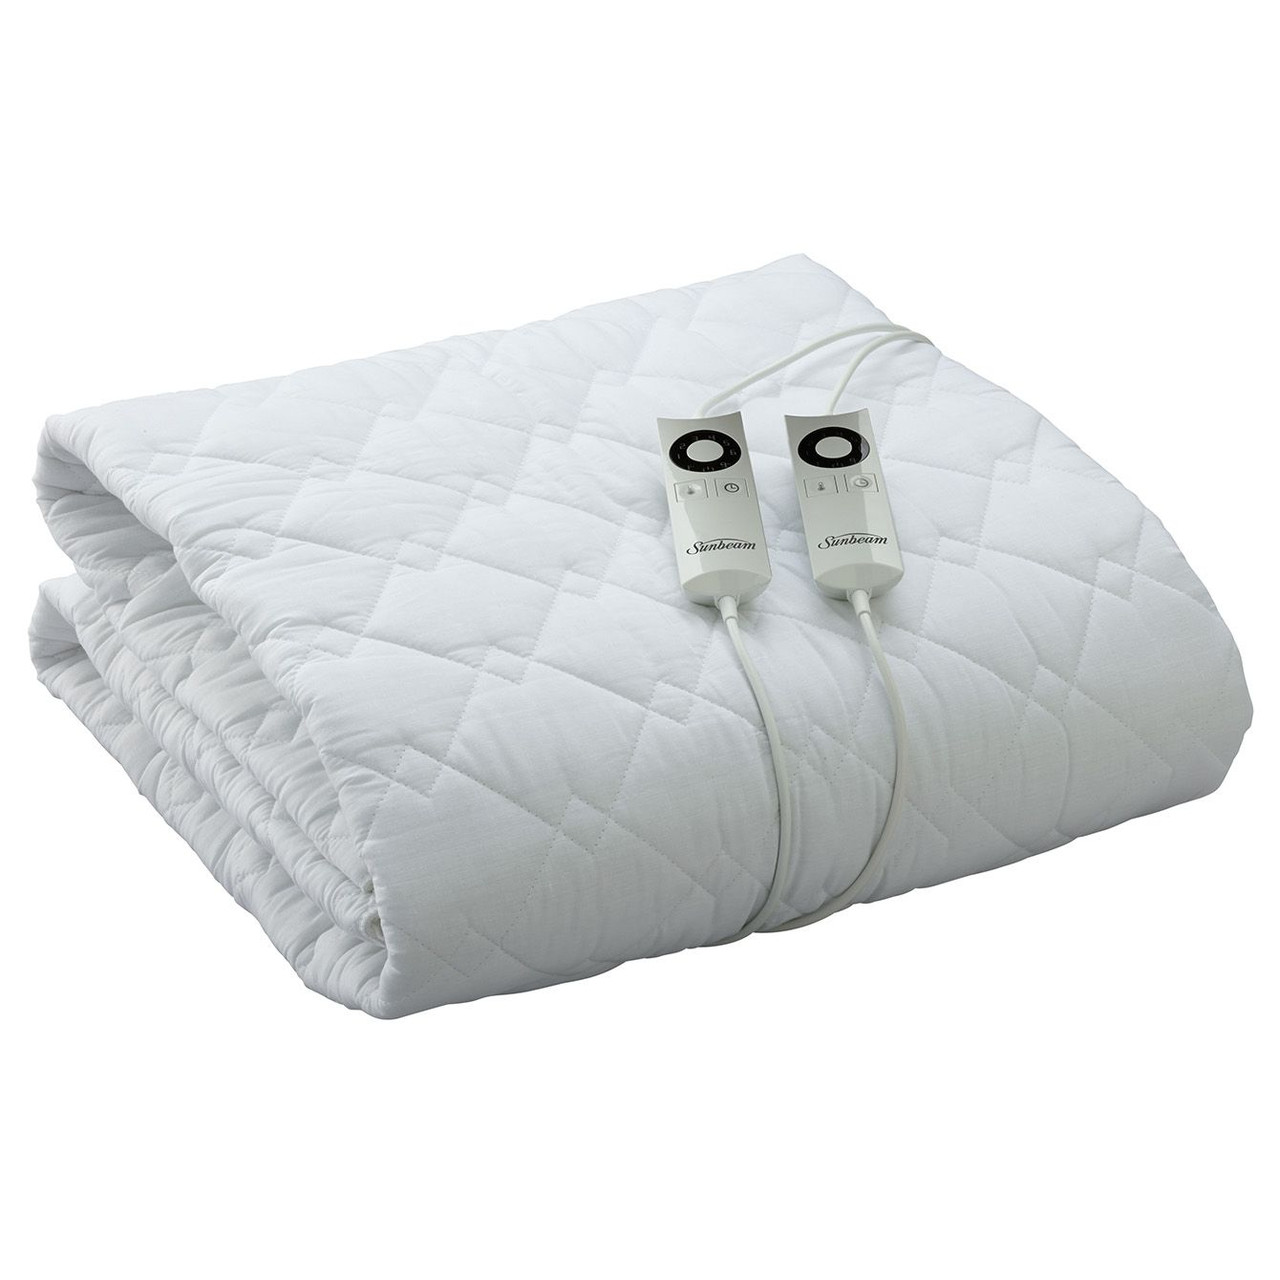 Sunbeam BLQ5451 Sleep Perfect™ Quilted Electric Blanket - Queen Bed